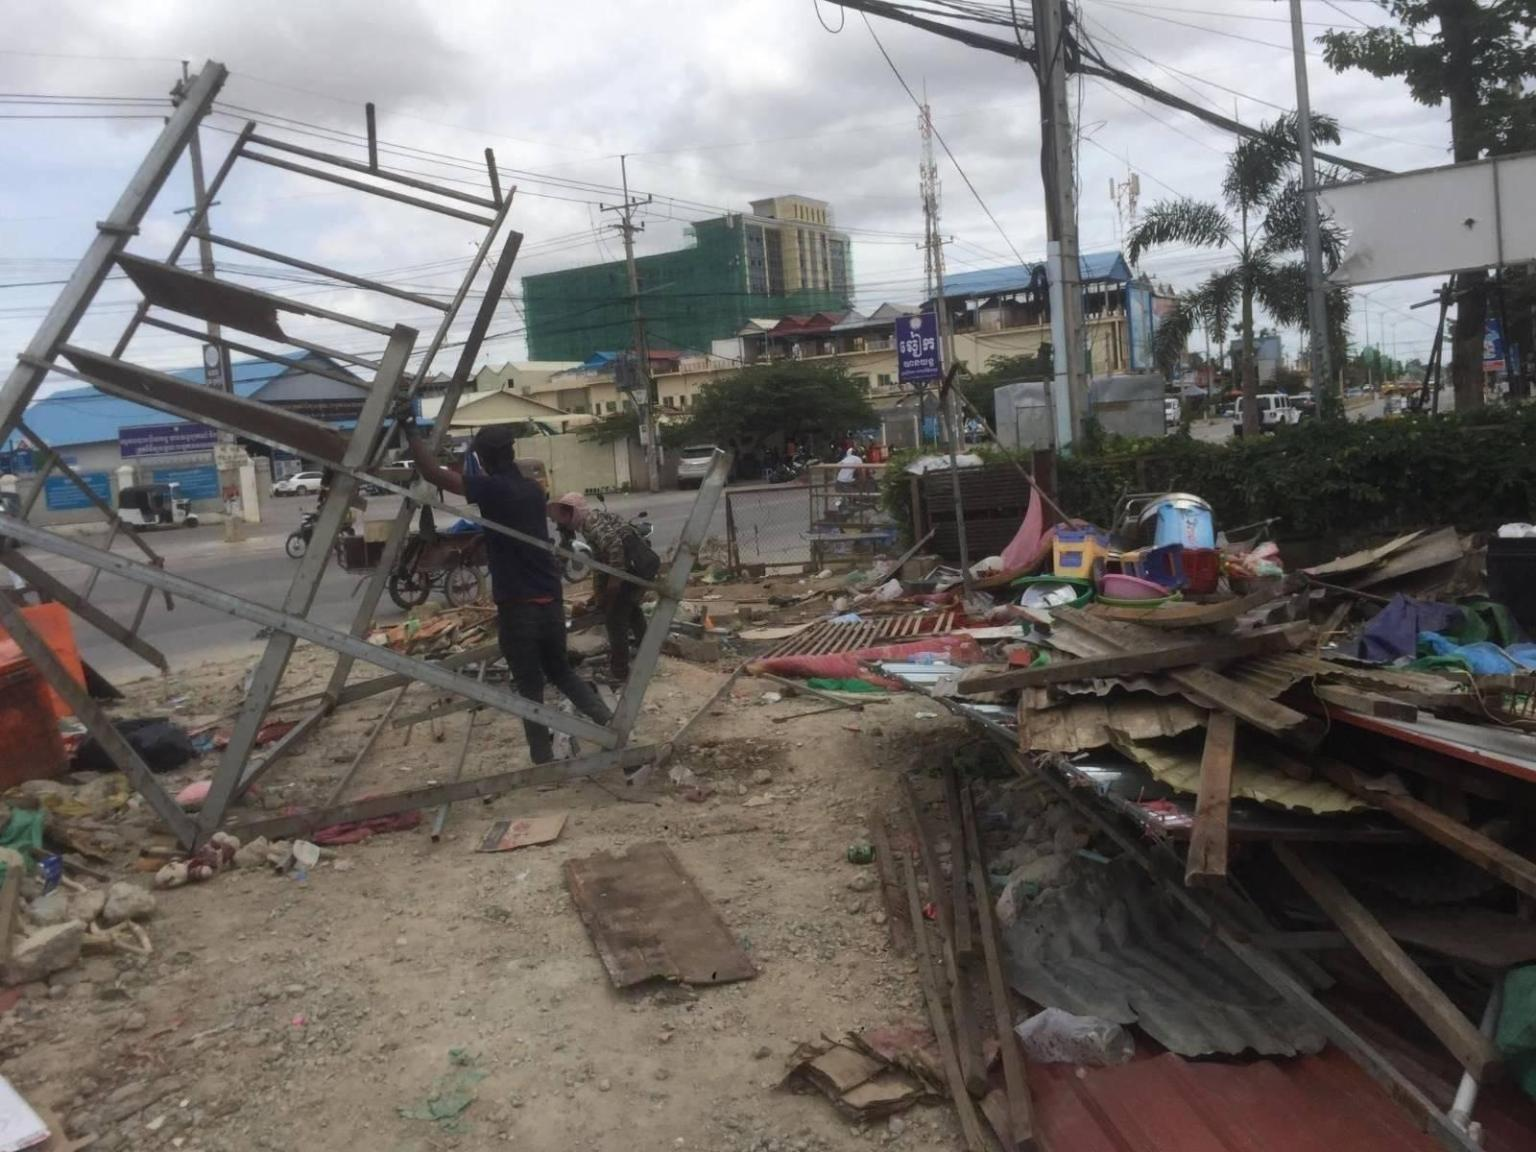 Russei Keo district authorities demolished homes on August 19 in the lake area Boeung Chhouk community. Photo originally posted by rights group Sahmakun Teang Tnaut.